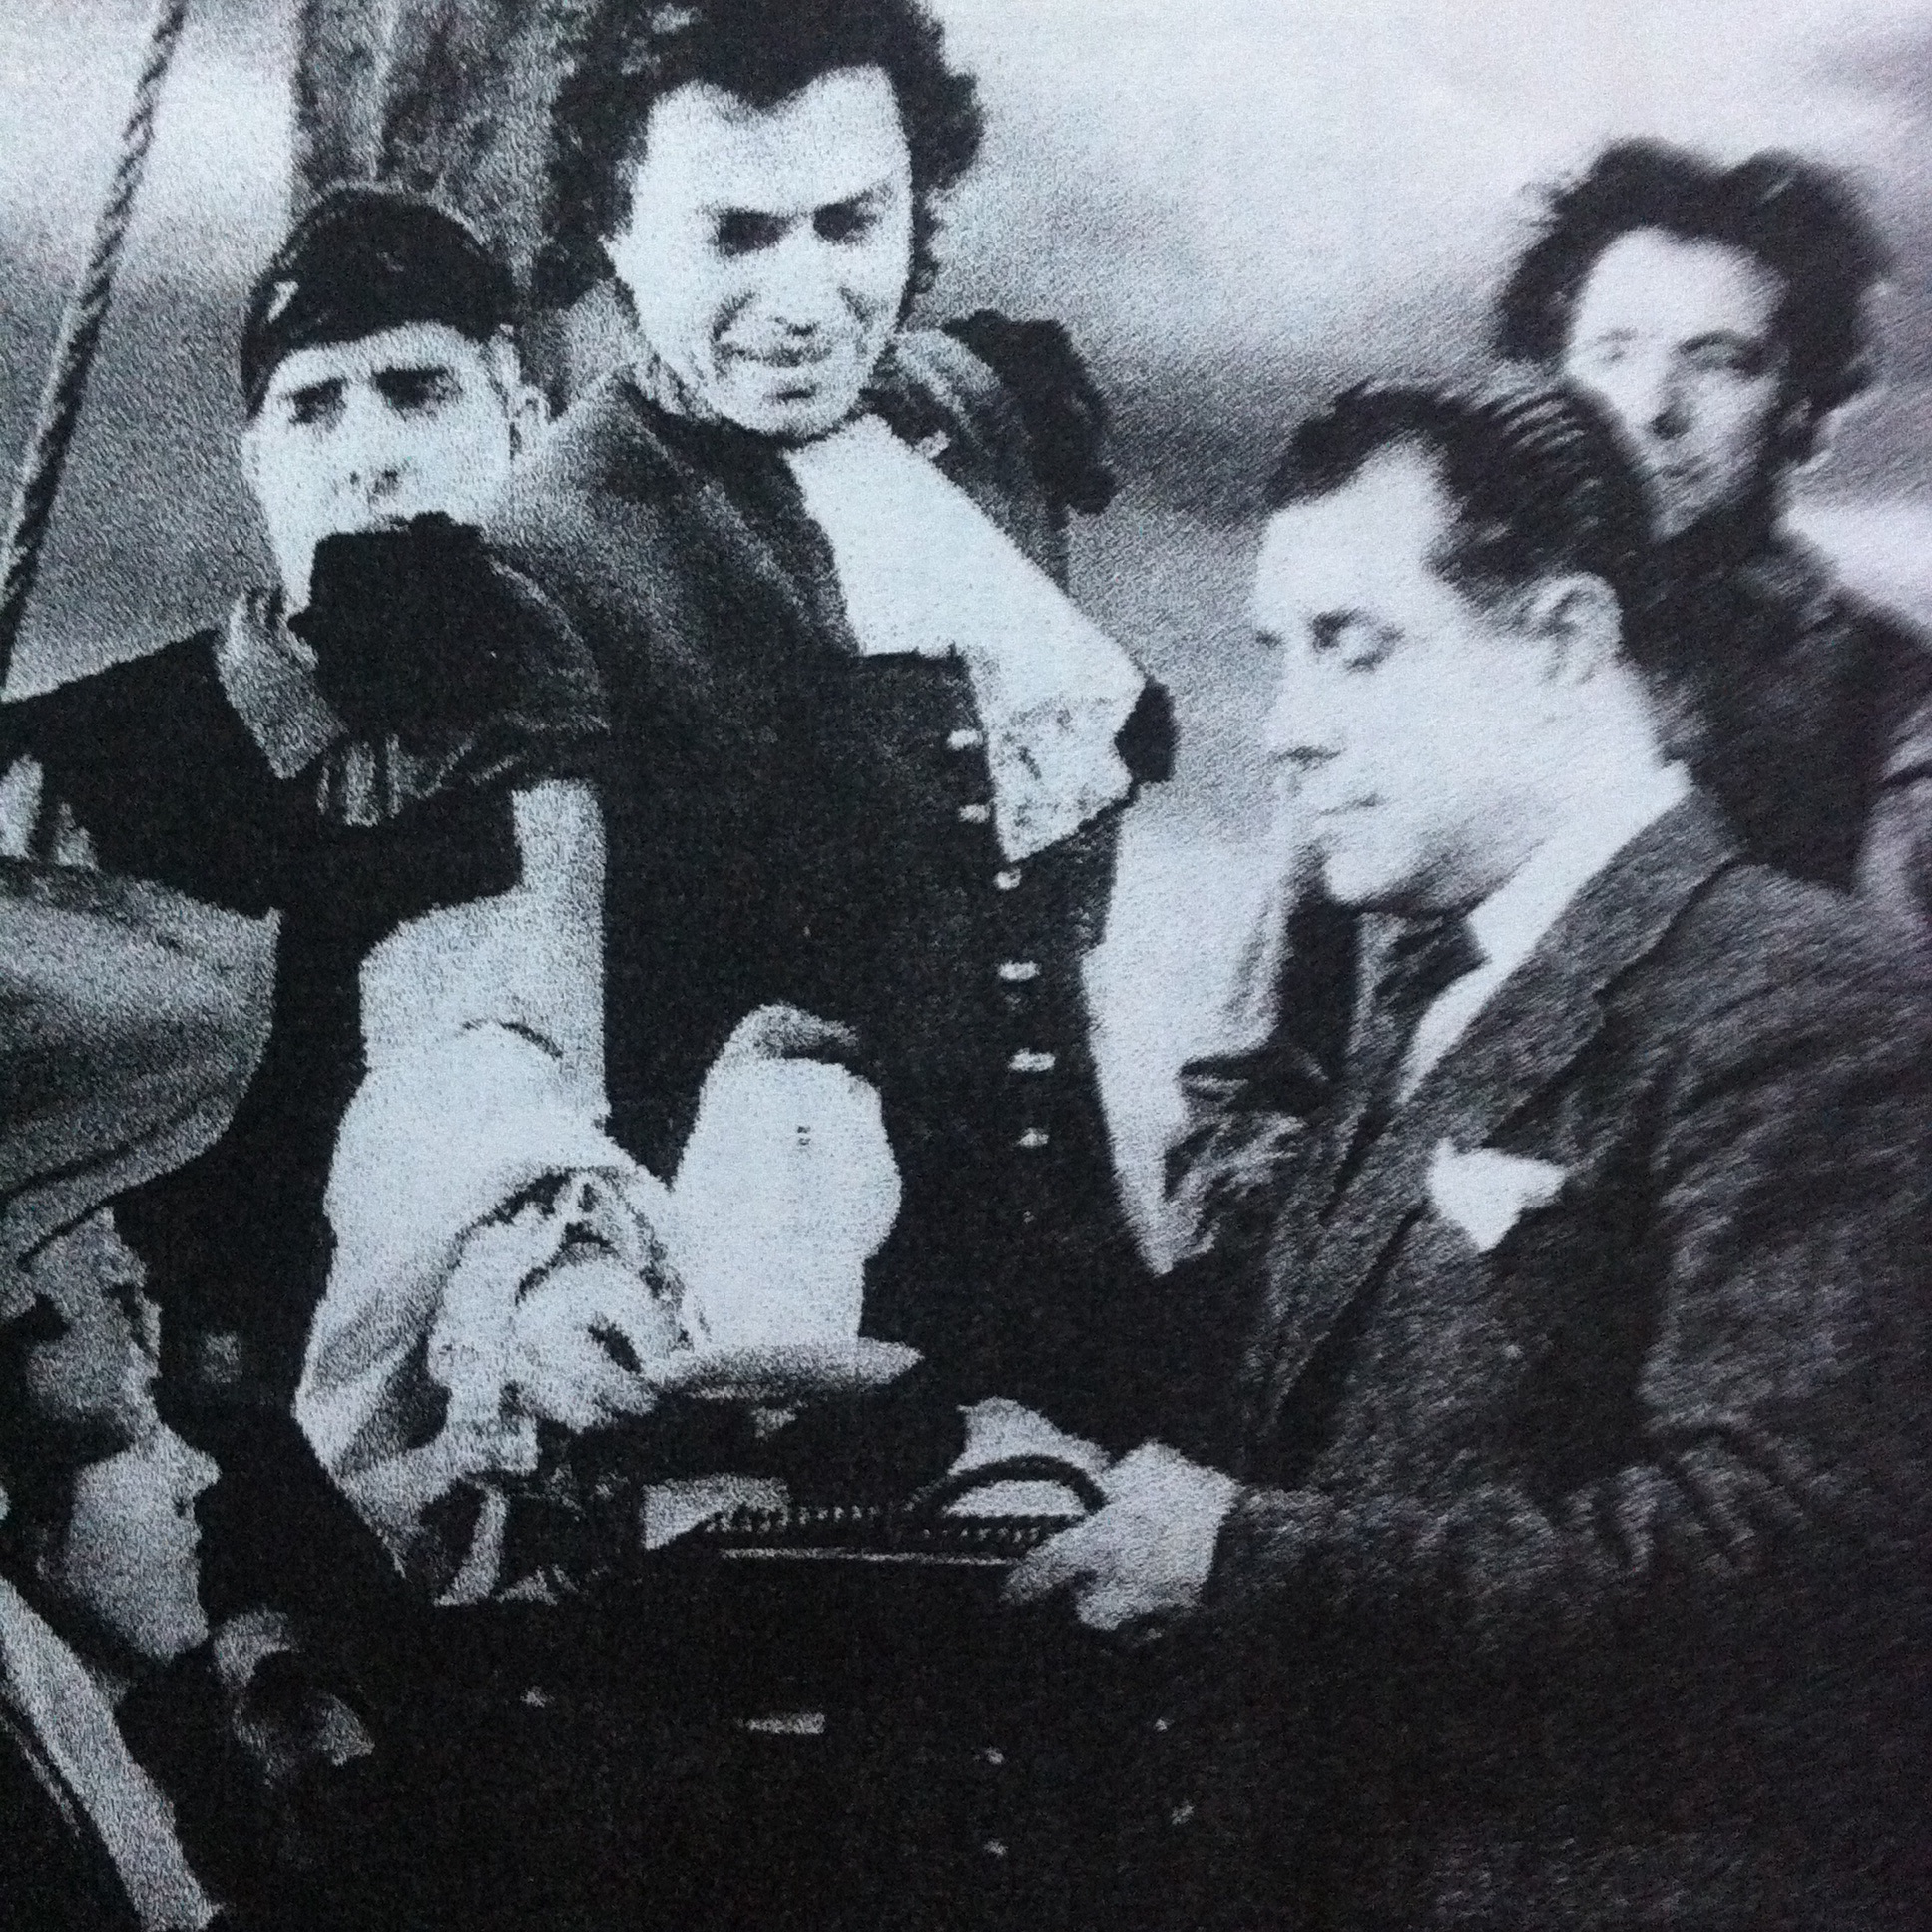 James Mason in The Wicked Lady (1945)